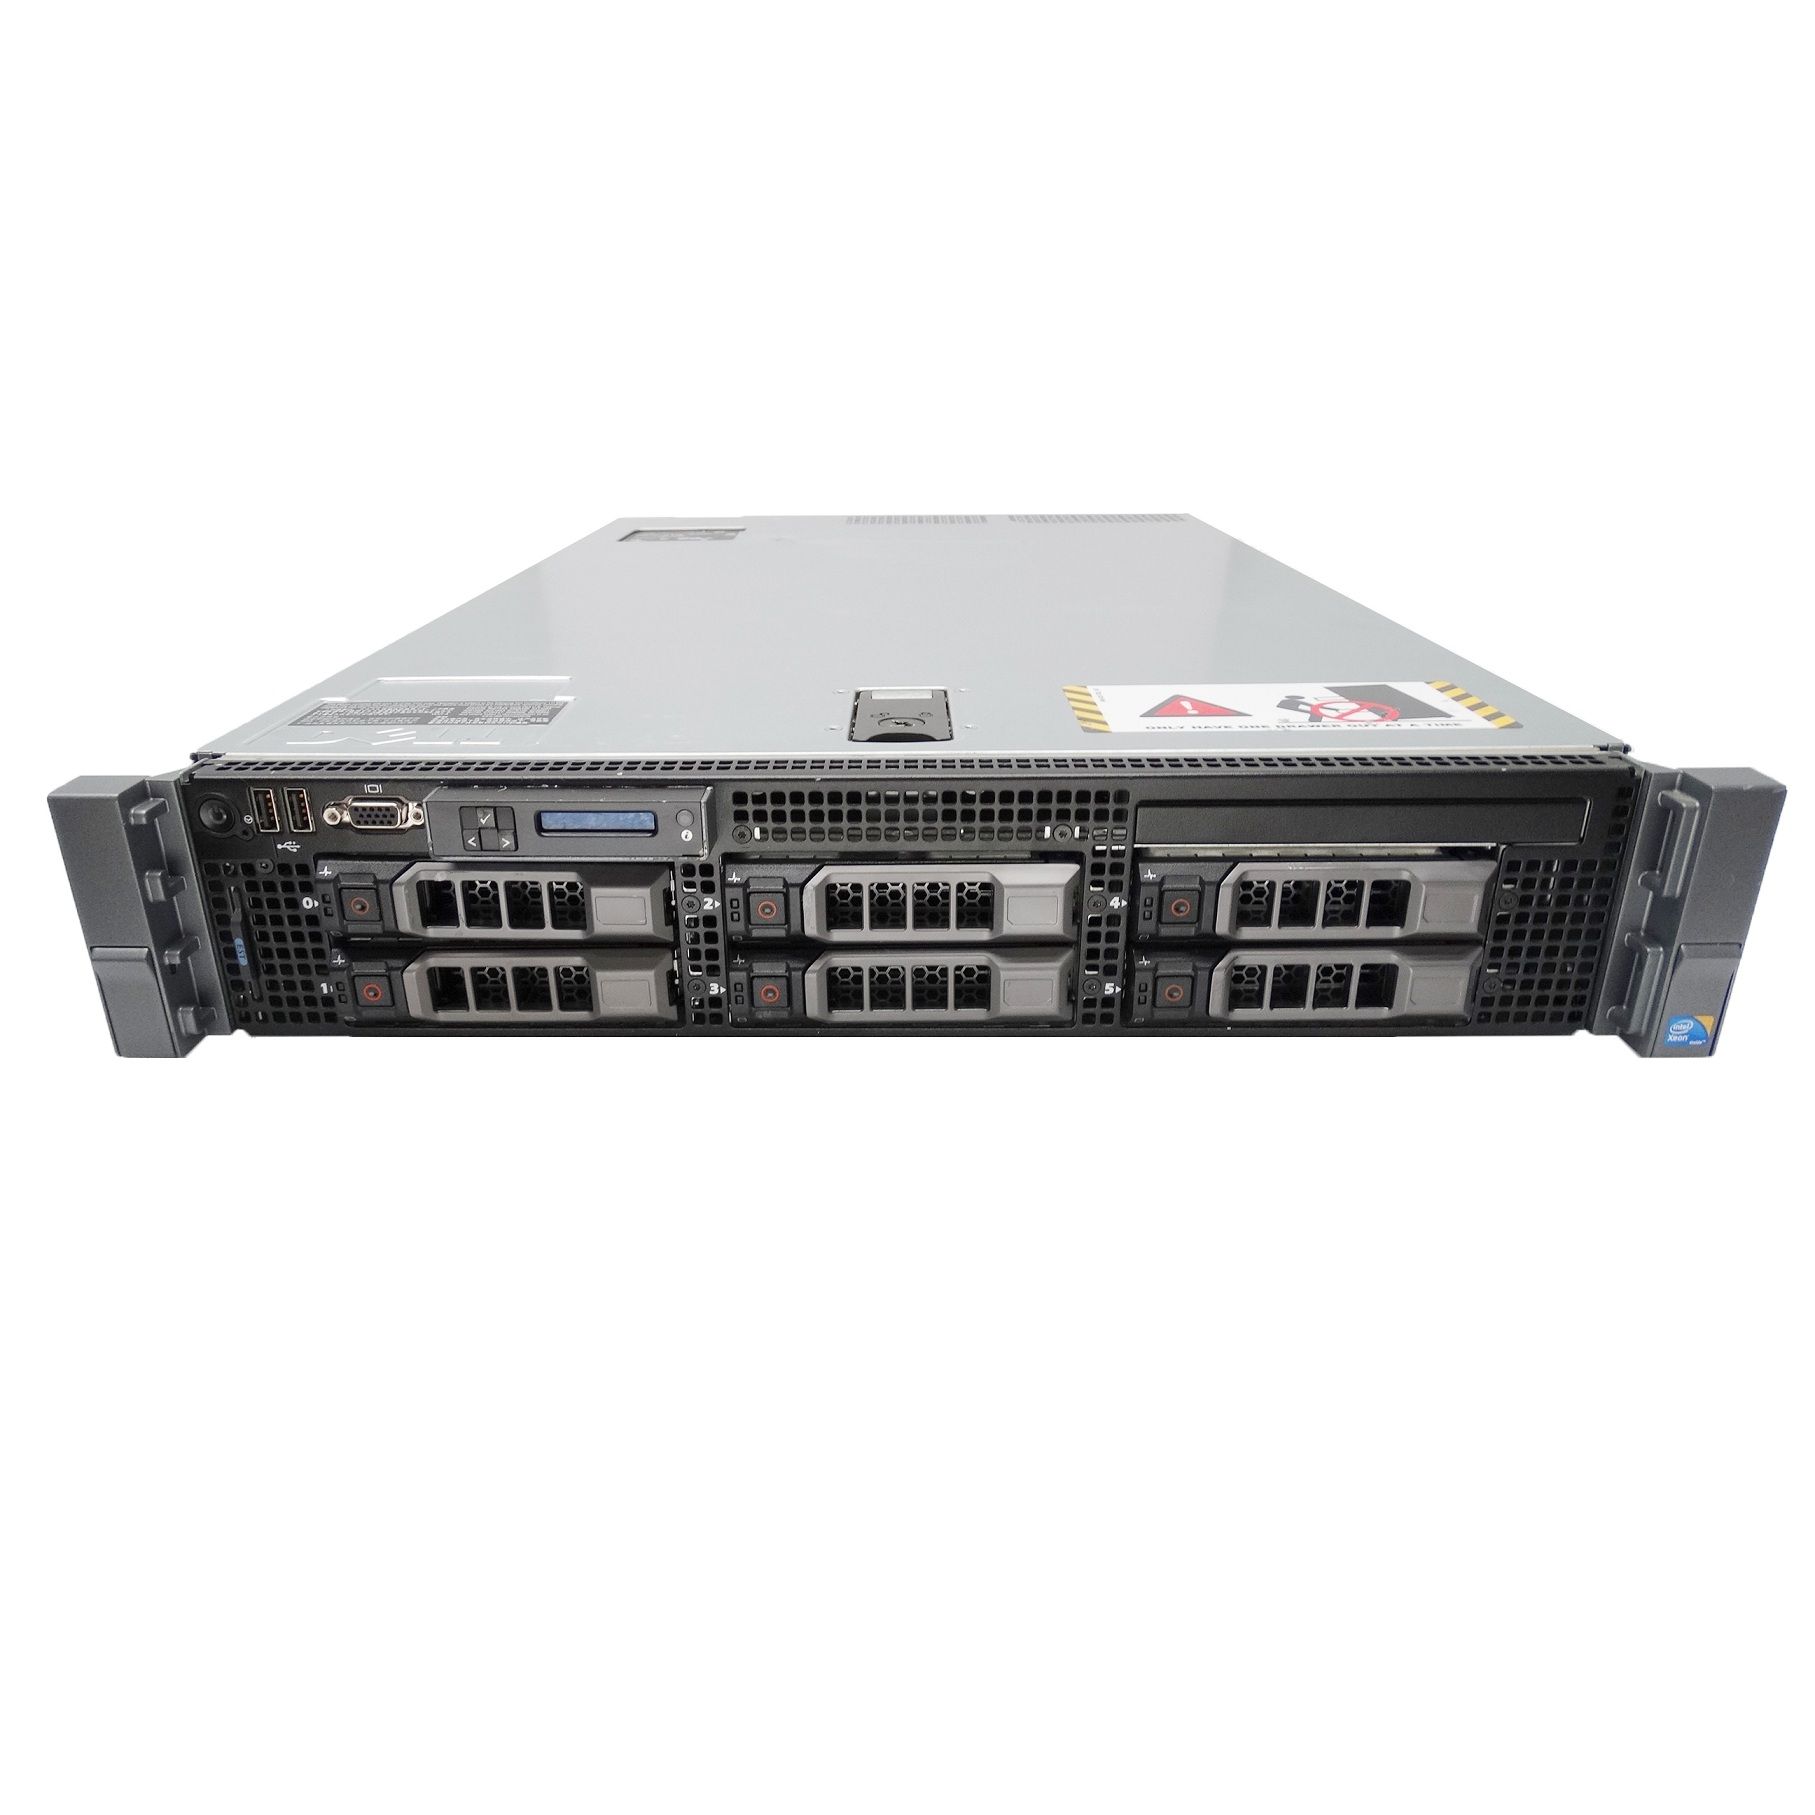 Dell PowerEdge R710 6-Bay LFF 2U Rackmount Server